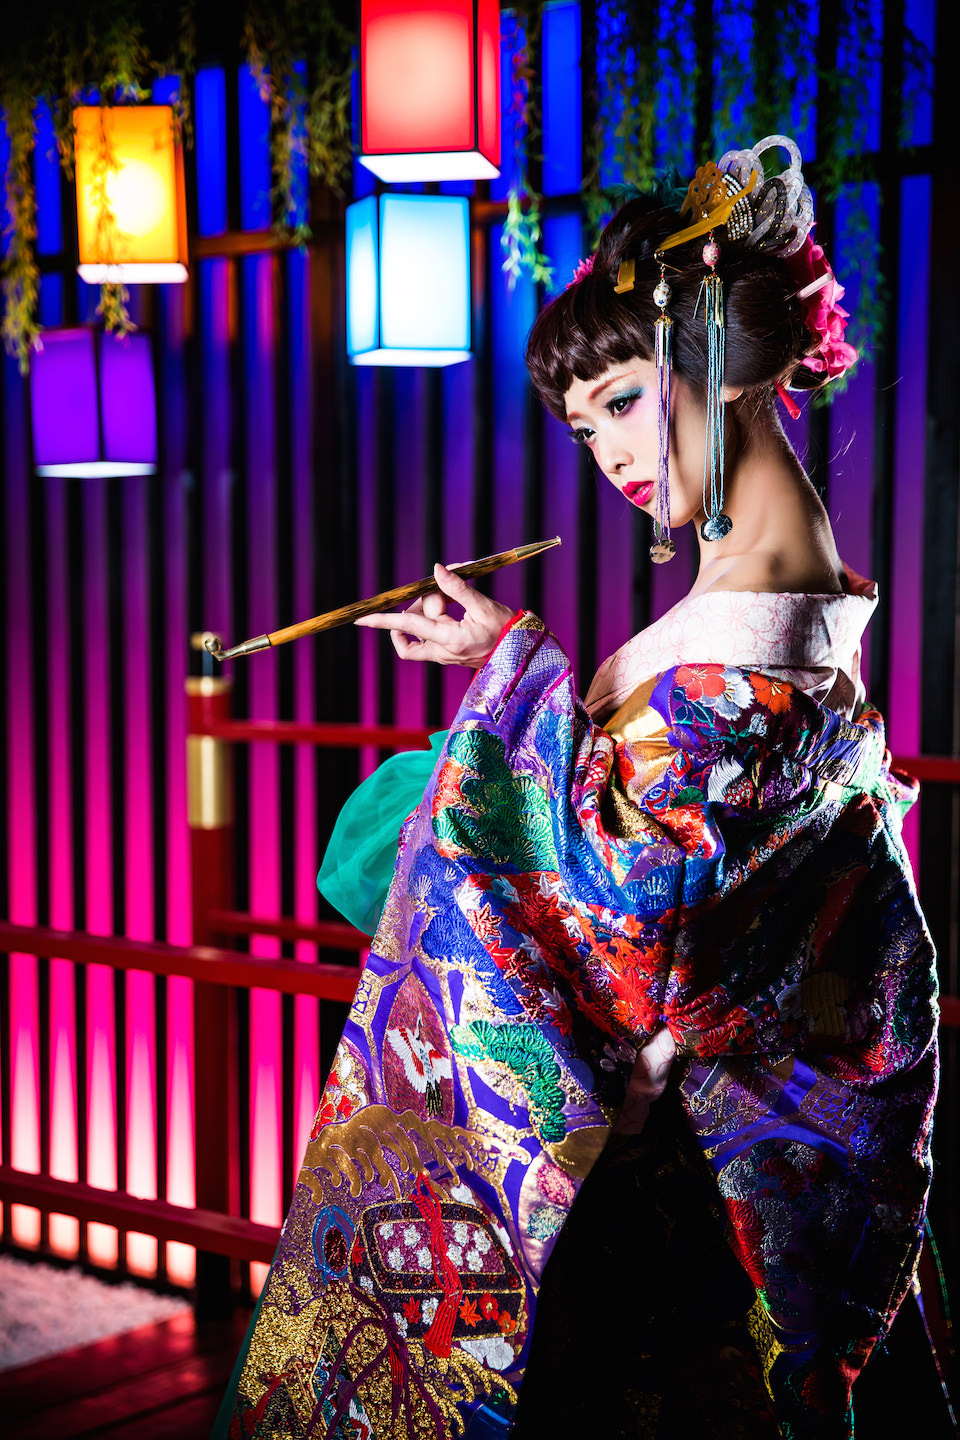 Picture of sexy oiran for make-over photo in Kyoto, Japan. Photo taken by Studio Esperanto.